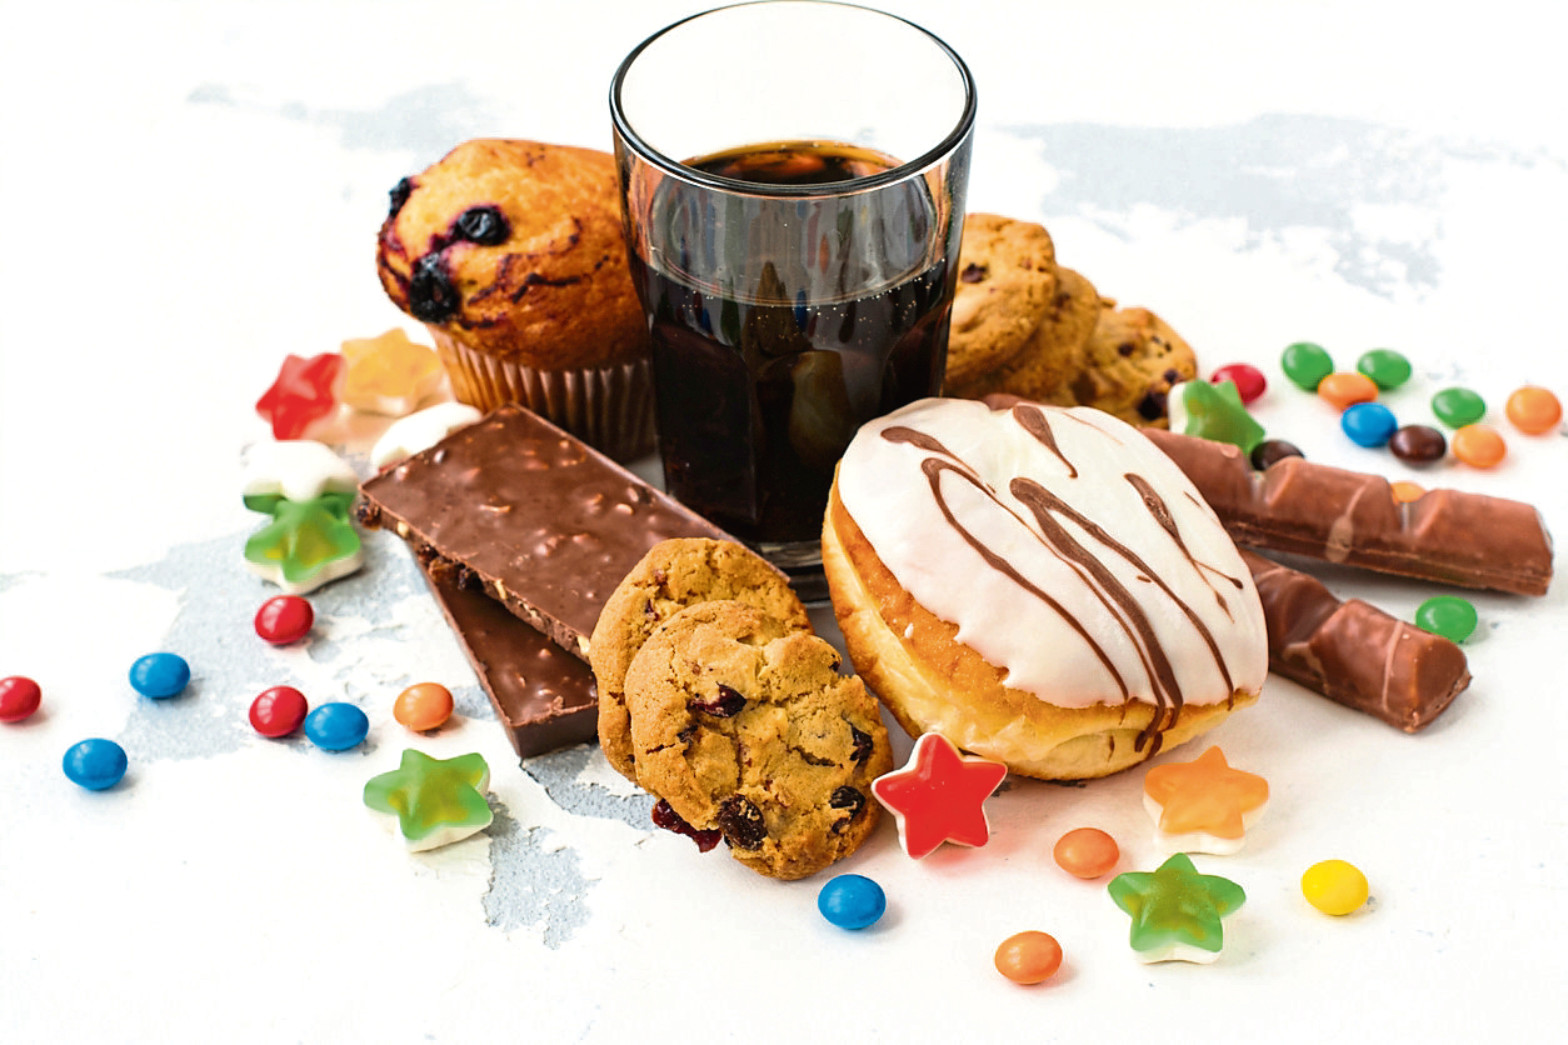 Assortment of products with high sugar level.